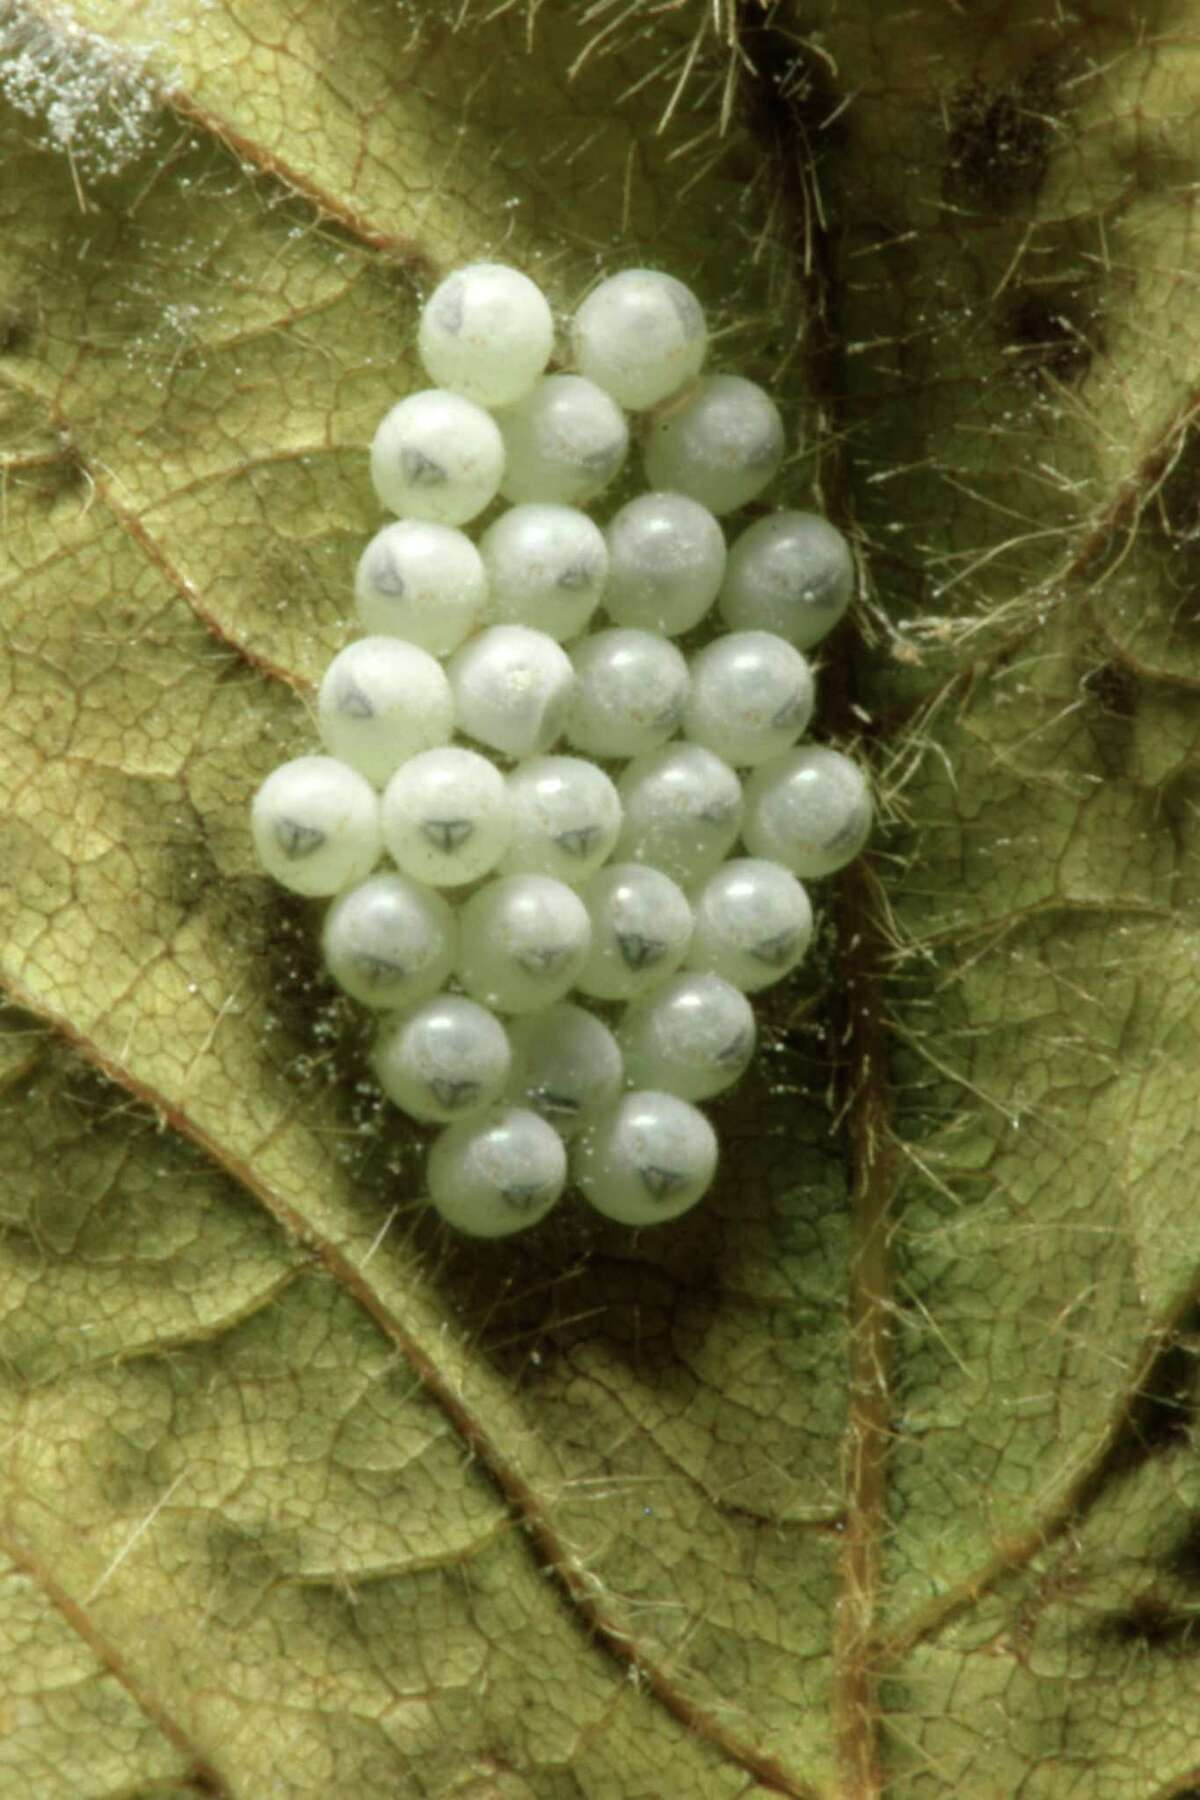 FILE - This Thursday, April 14, 2011, file photo shows brown marmorated stink bug eggs at a Penn State research station in Biglerville, Pa. The bug is native to Asia and began appearing in mid-Atlantic orchards in 2003. It?'s now been spotted in 33 states, including every one east of the Mississippi River and as far west as California. (AP Photo/Matt Rourke, File)